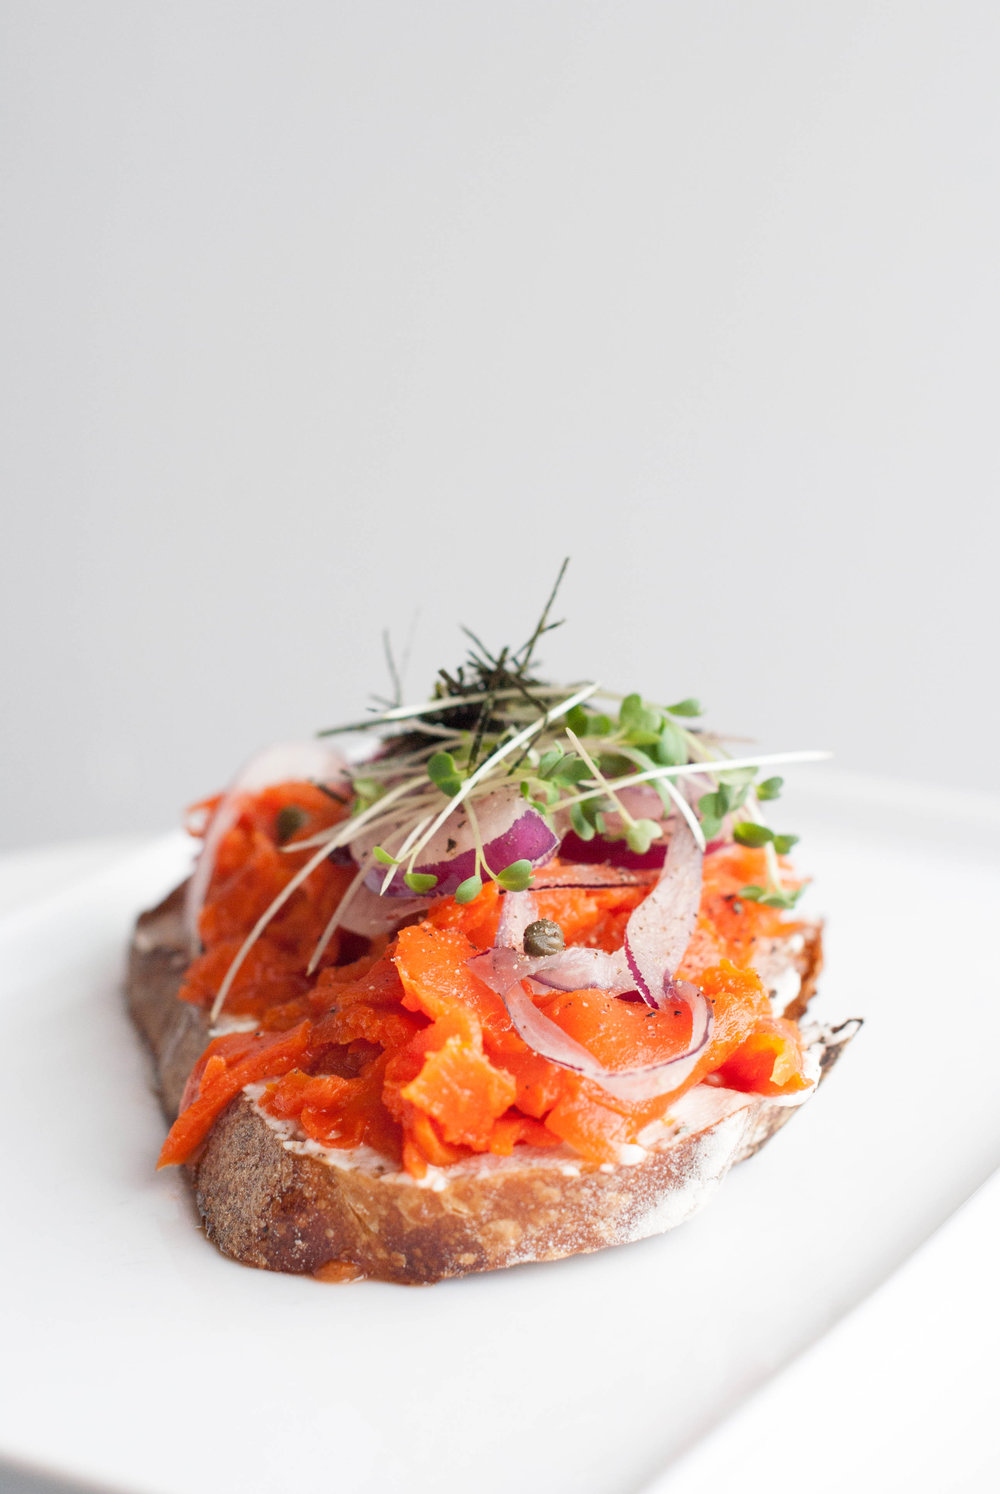 carrot lox on a local bakery's bread (bread not gluten-free, but naturally leavened )